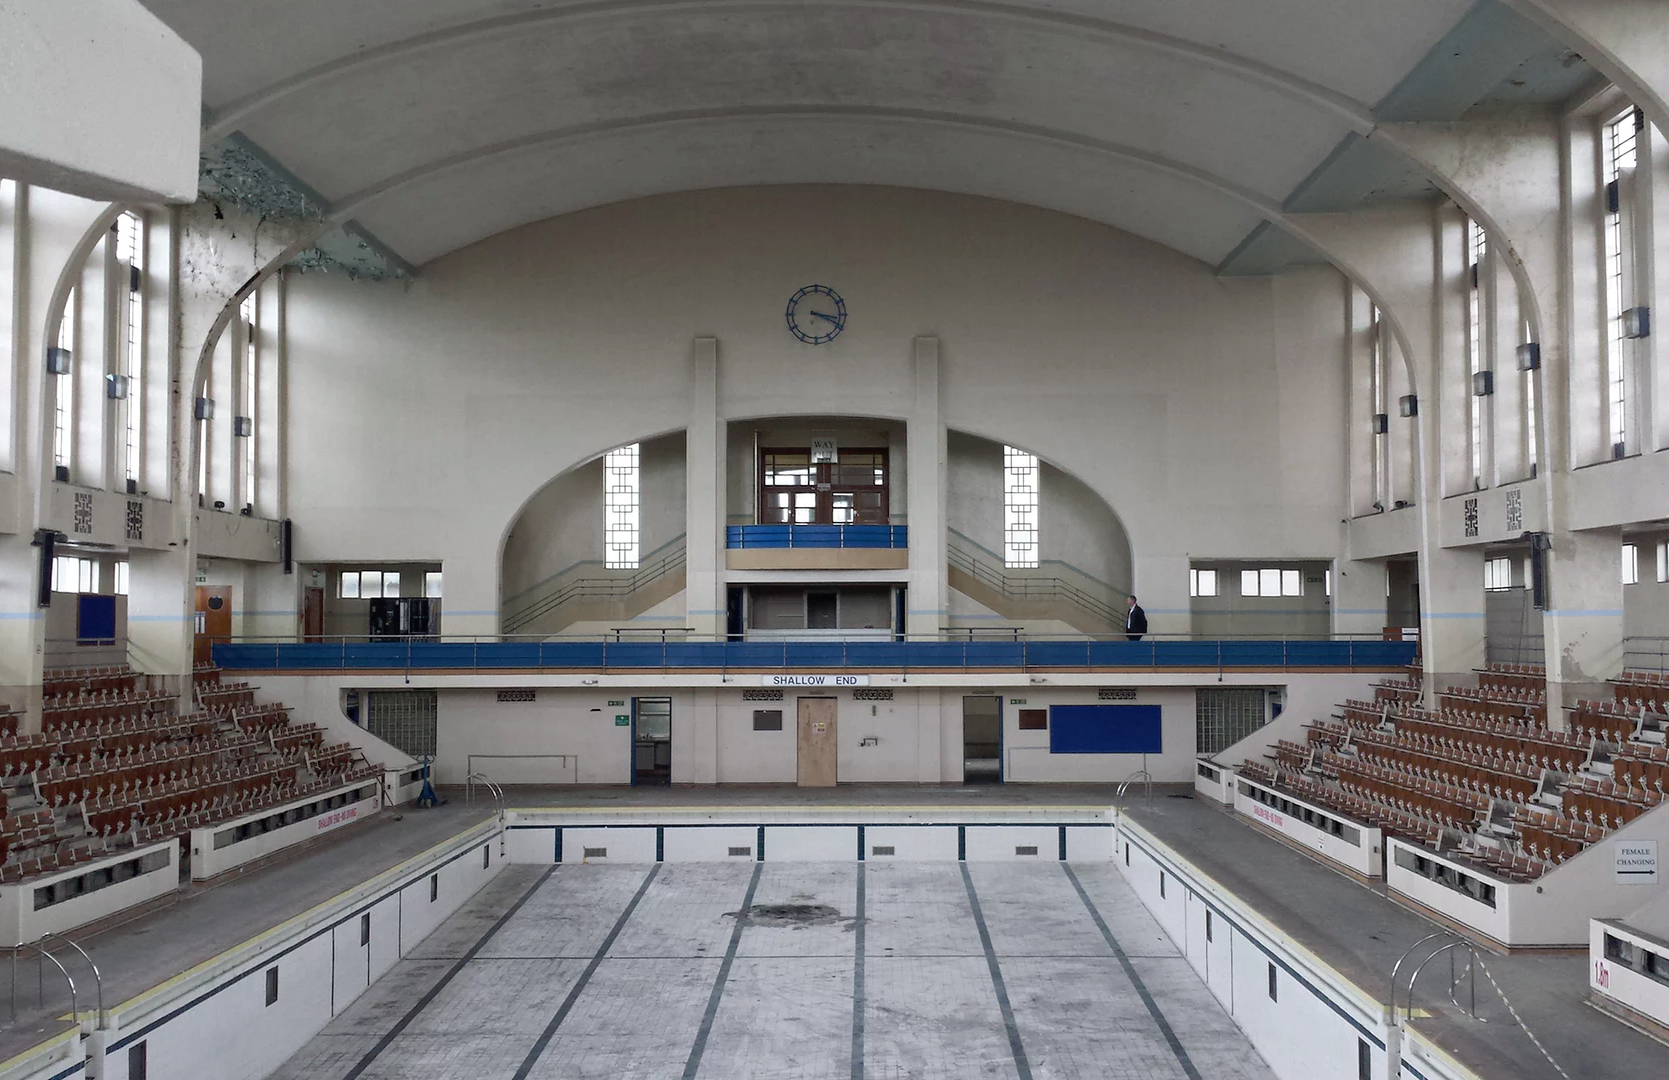 Bon Accord baths in Aberdeen. Photograph: Eveleigh Photography